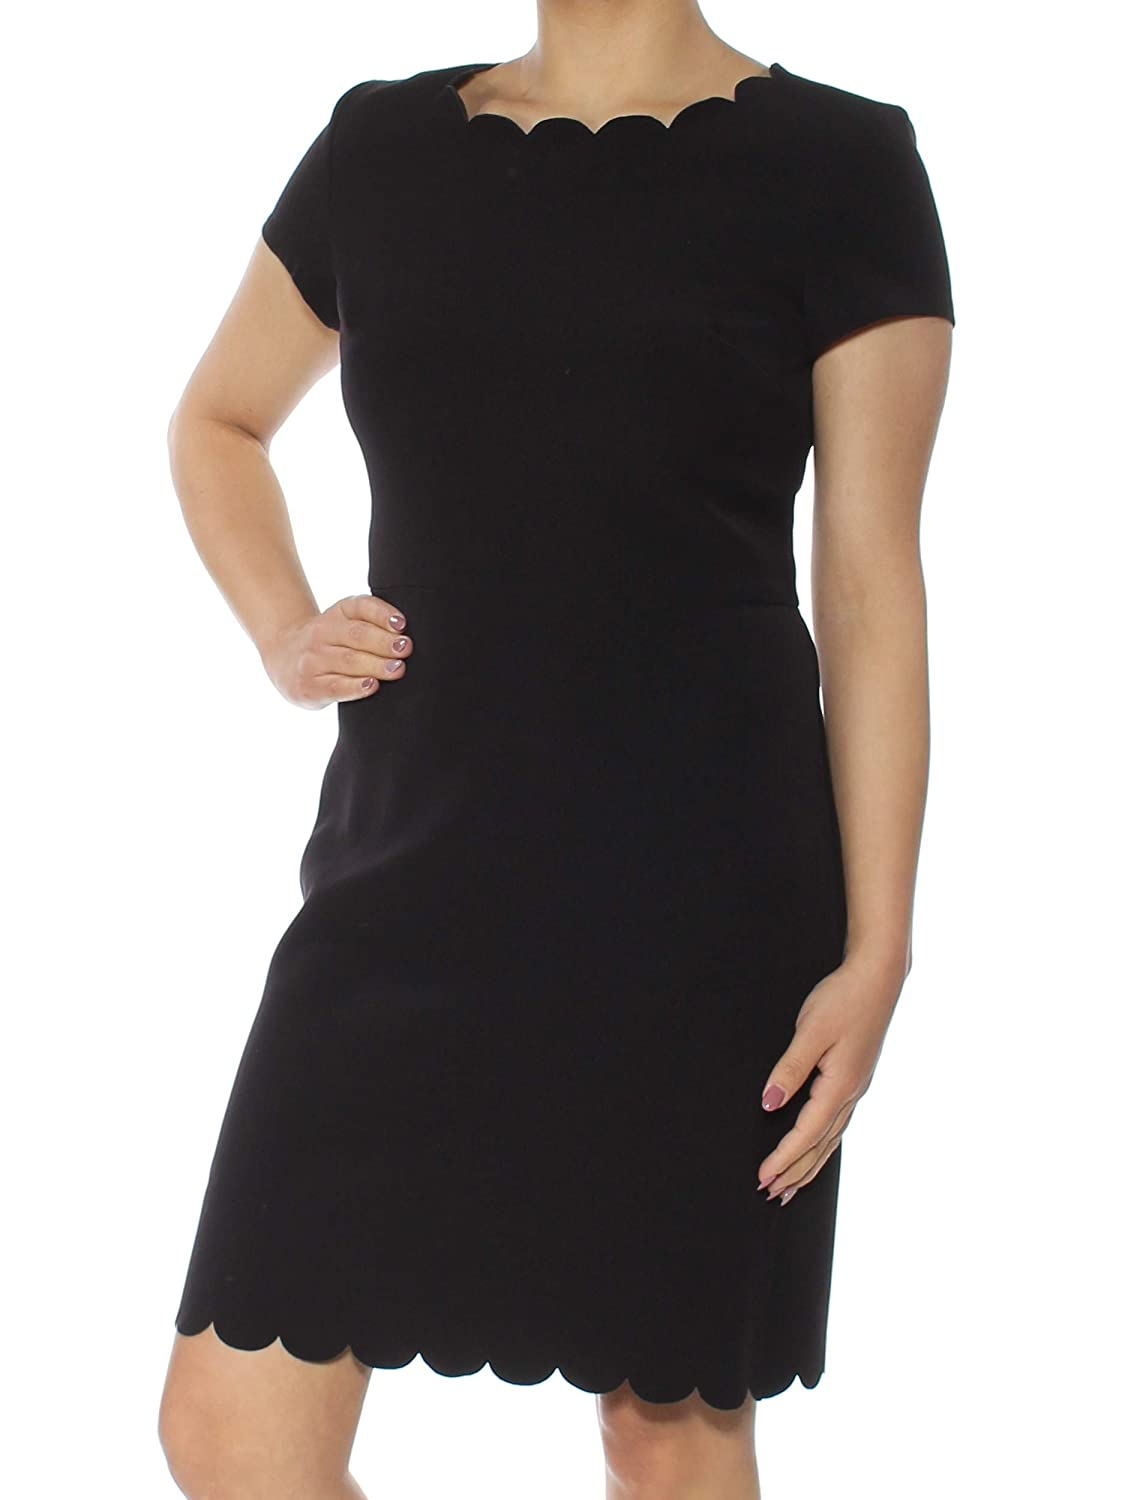 Deepblack Maison Jules Womens Scalloped Shift Dress